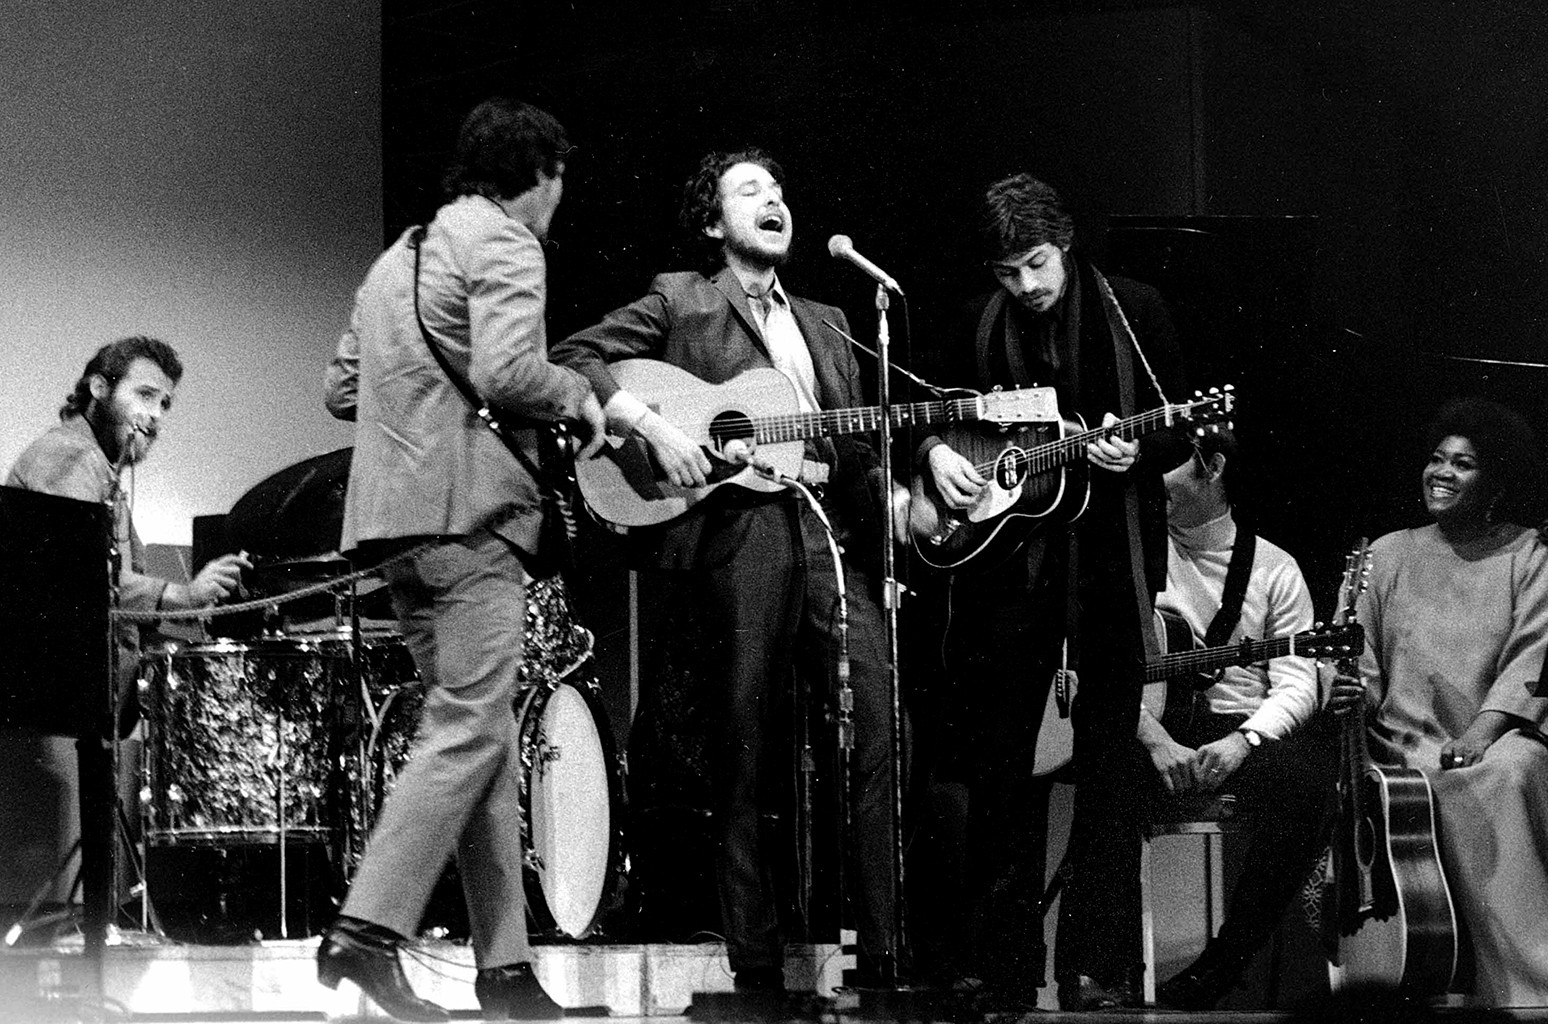 Bob Dylan & The Band